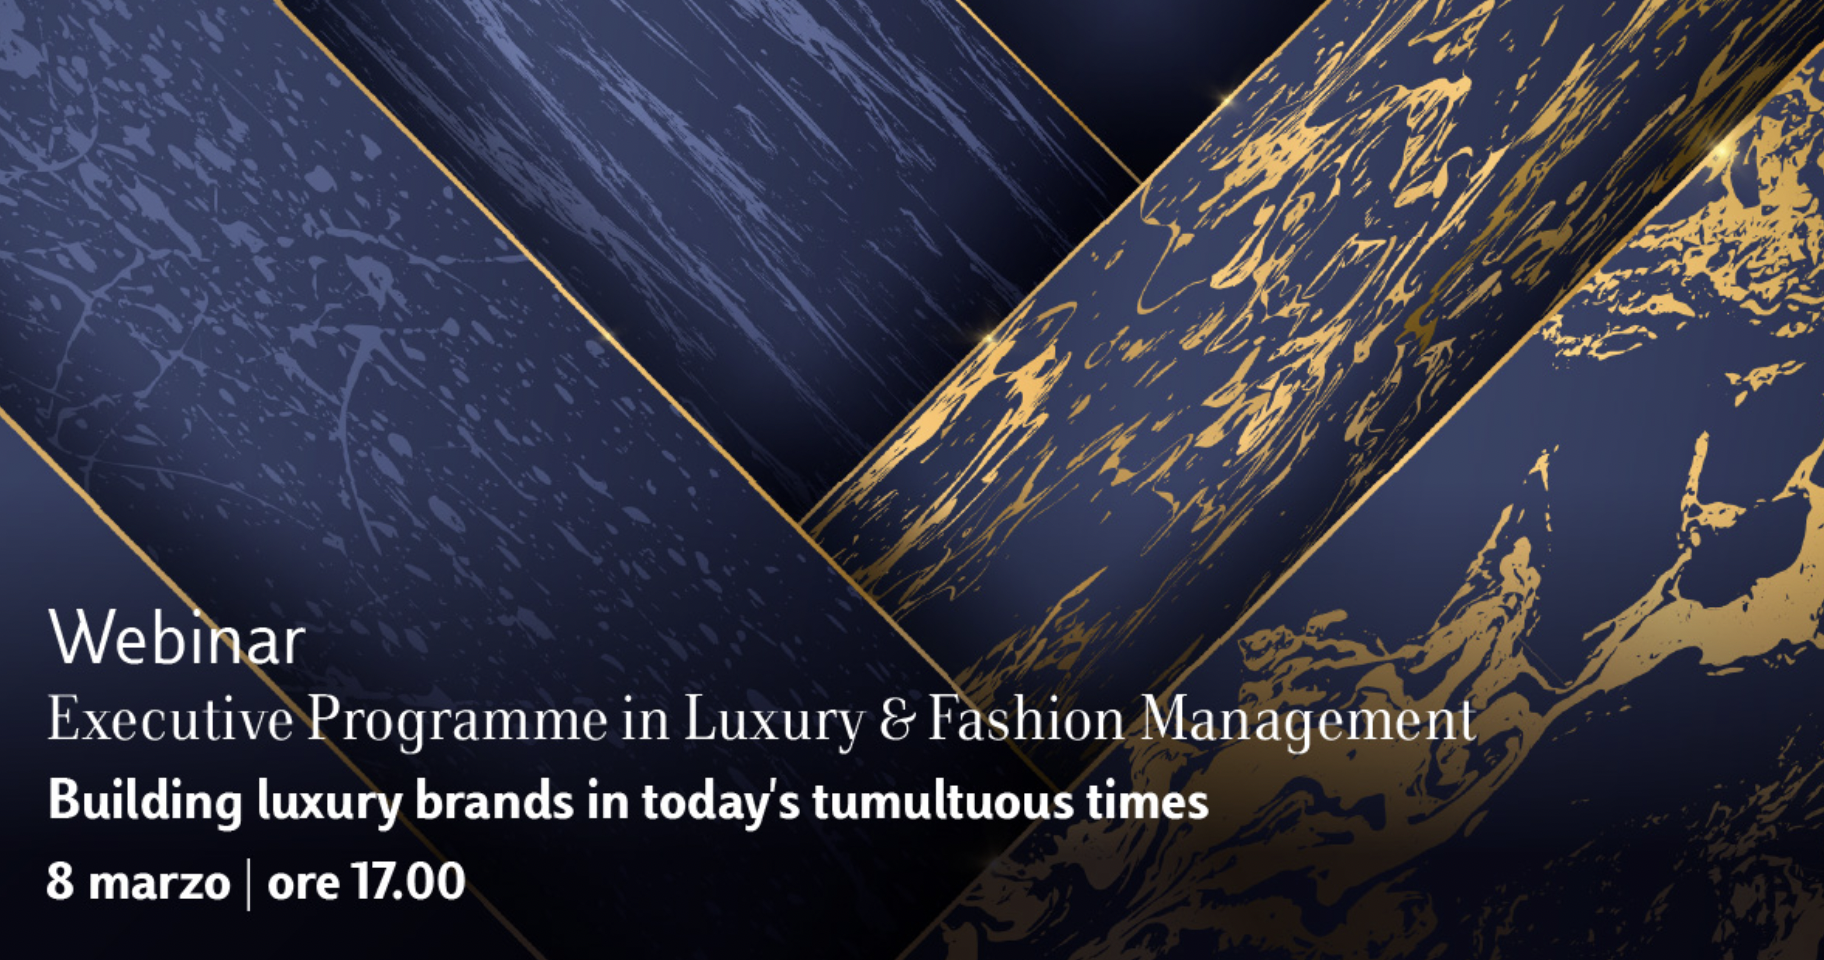 Building Luxury Brands in today's tumultuous times